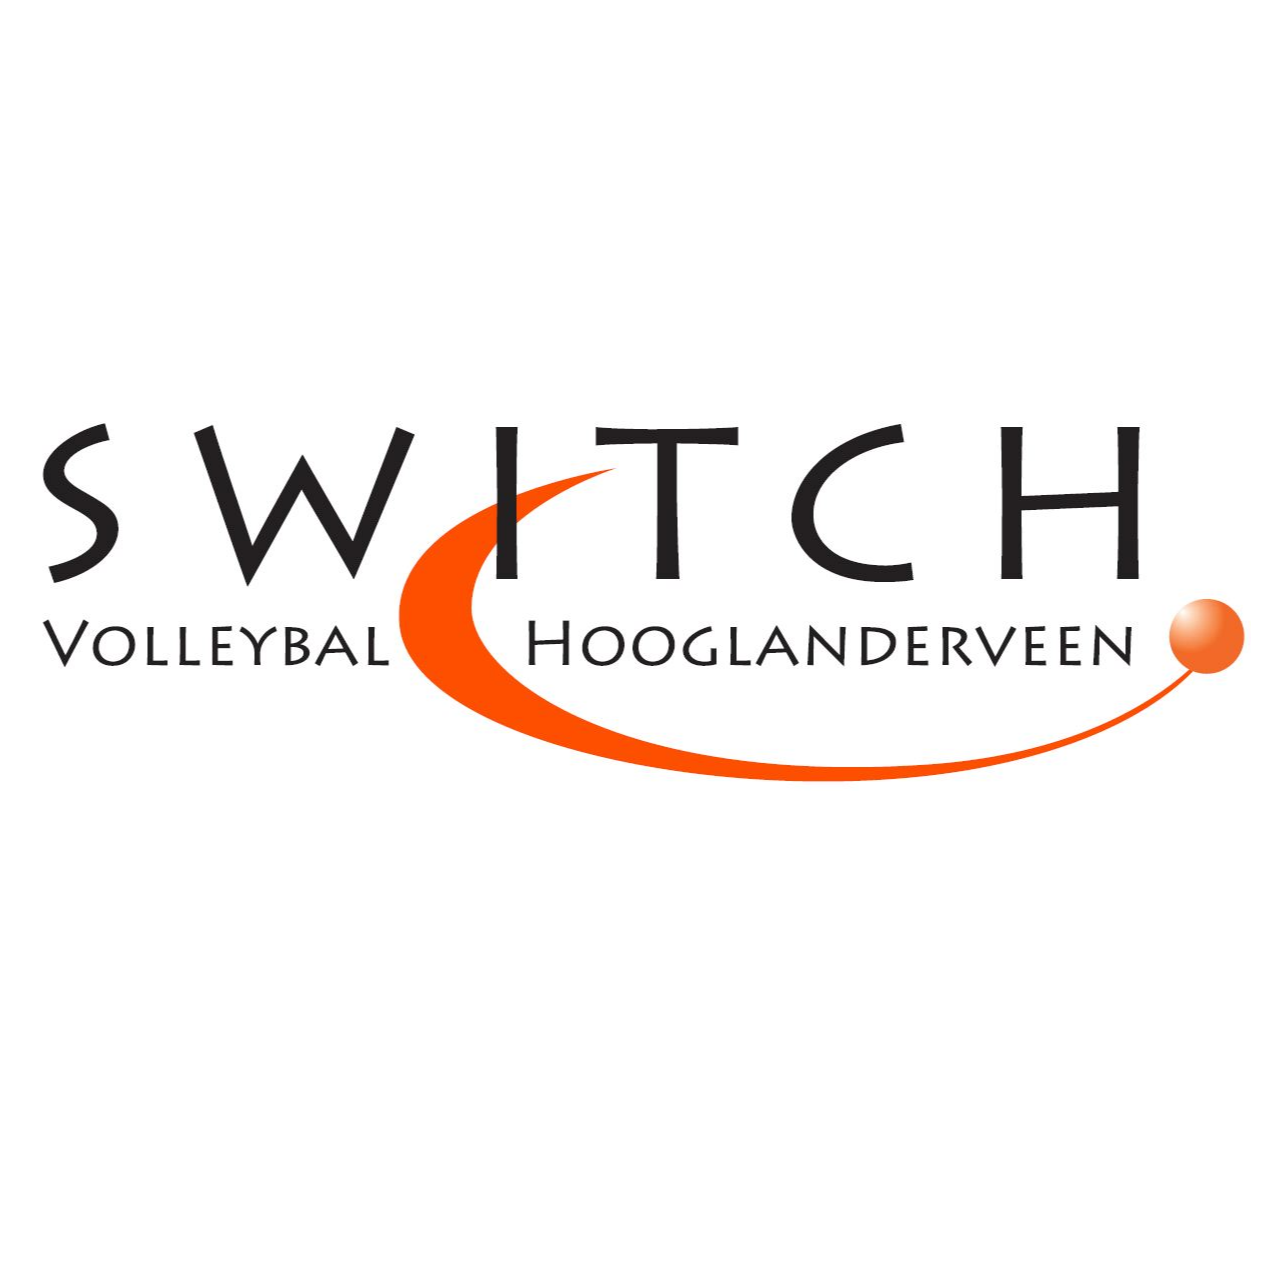 Switch Volleybalvereniging Hooglanderveen